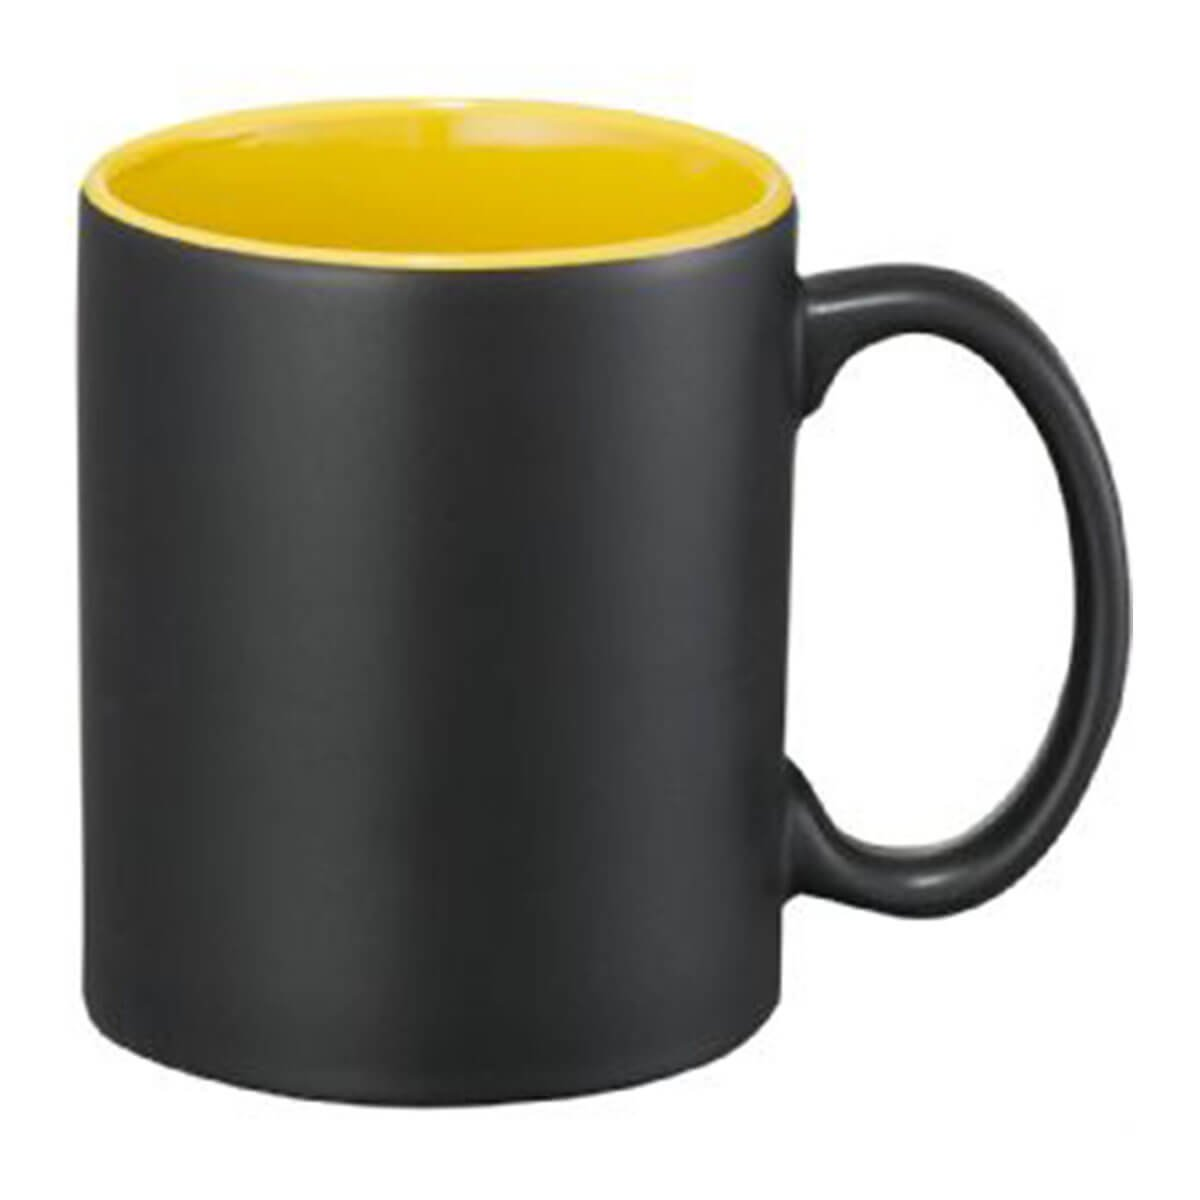 Maya Ceramic Mug-Black and yellow